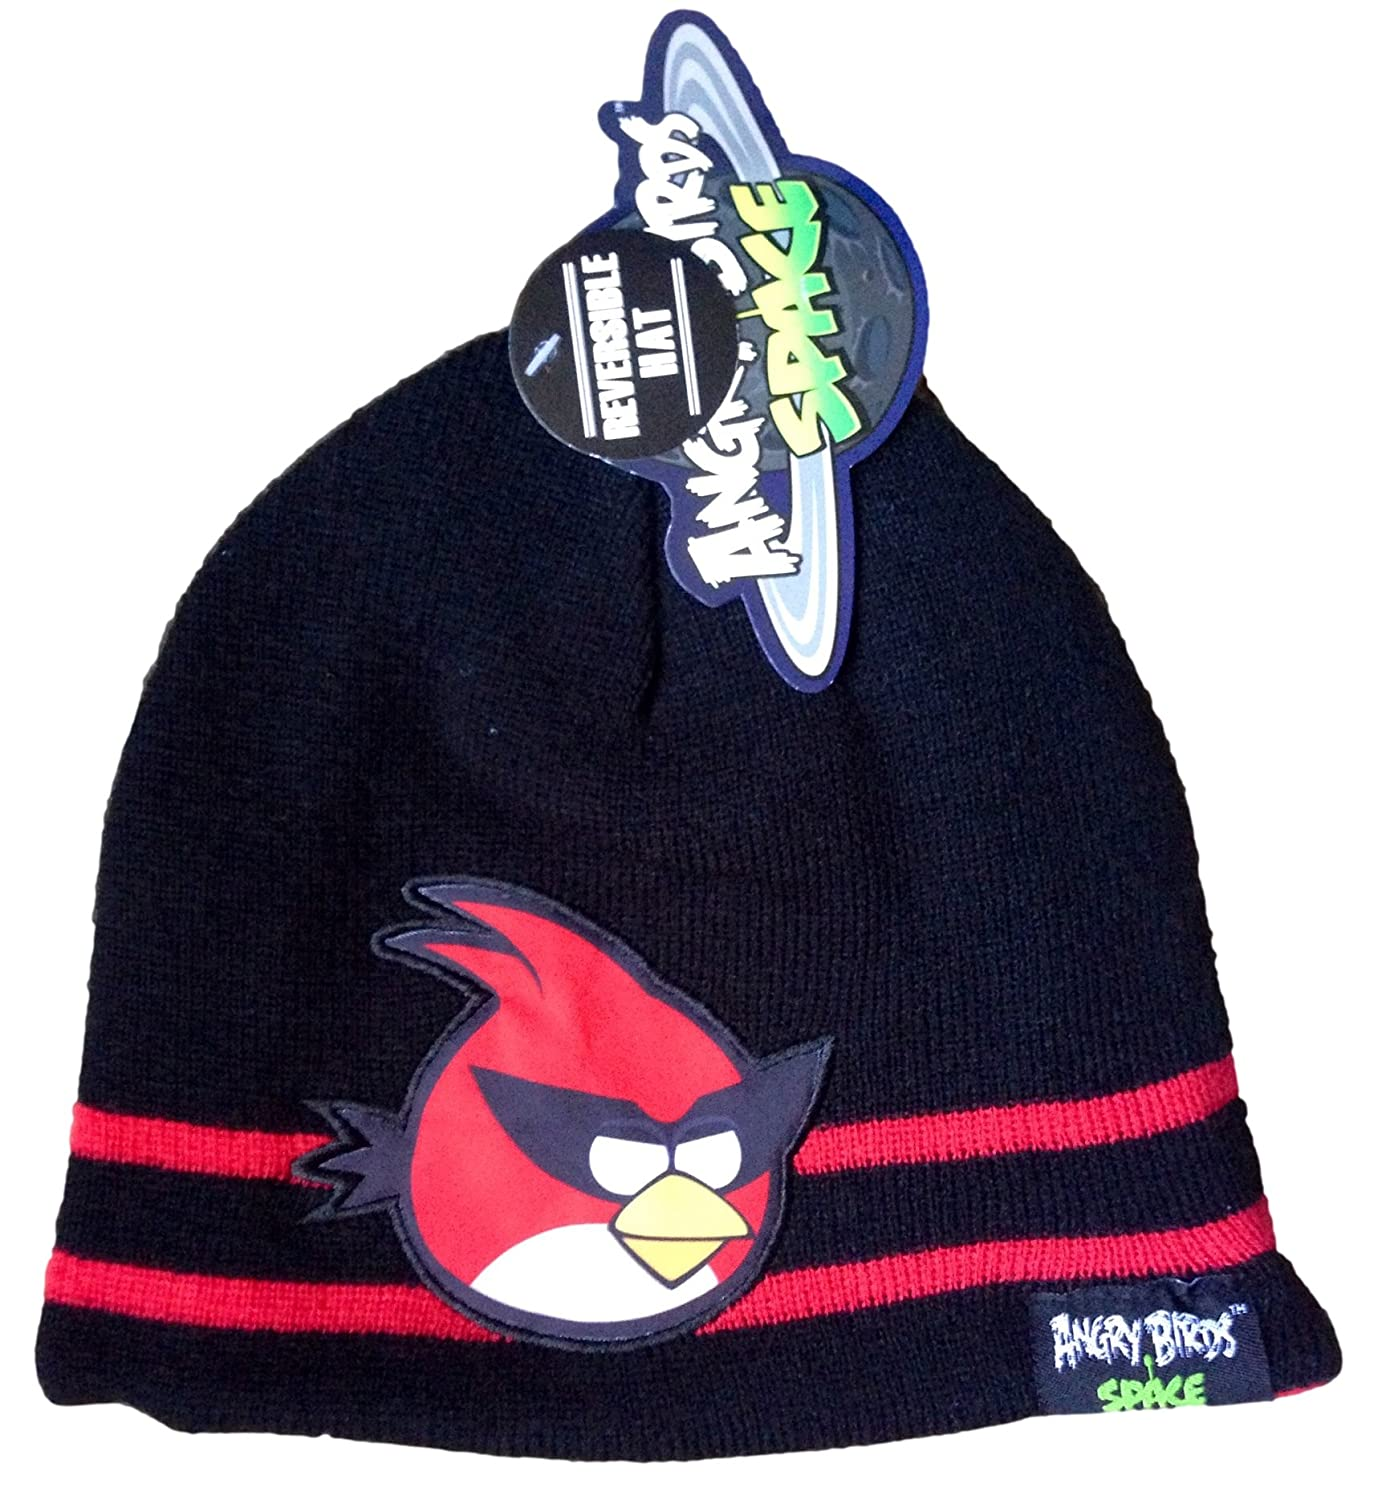 ANGRY BIRDS - Space - Adorable Red / Black Reversible Kids Beanie Hat